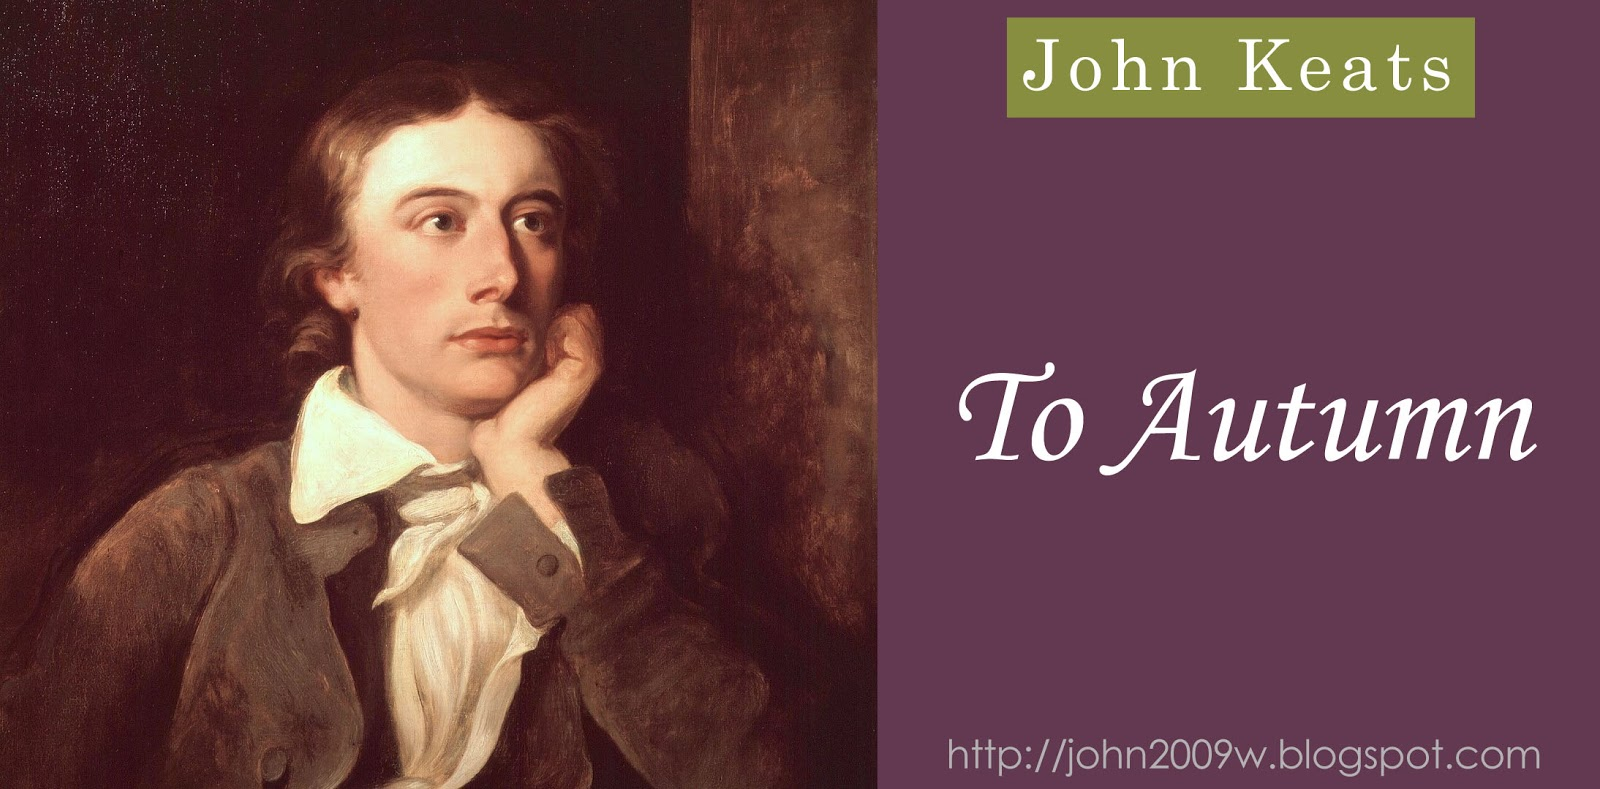 an analysis of to autumn by john keats Keats' poems and letters study guide contains a biography of john keats, literature essays, a complete e-text, quiz questions, major themes, characters, and a full summary and analysis about keats' poems and letters.